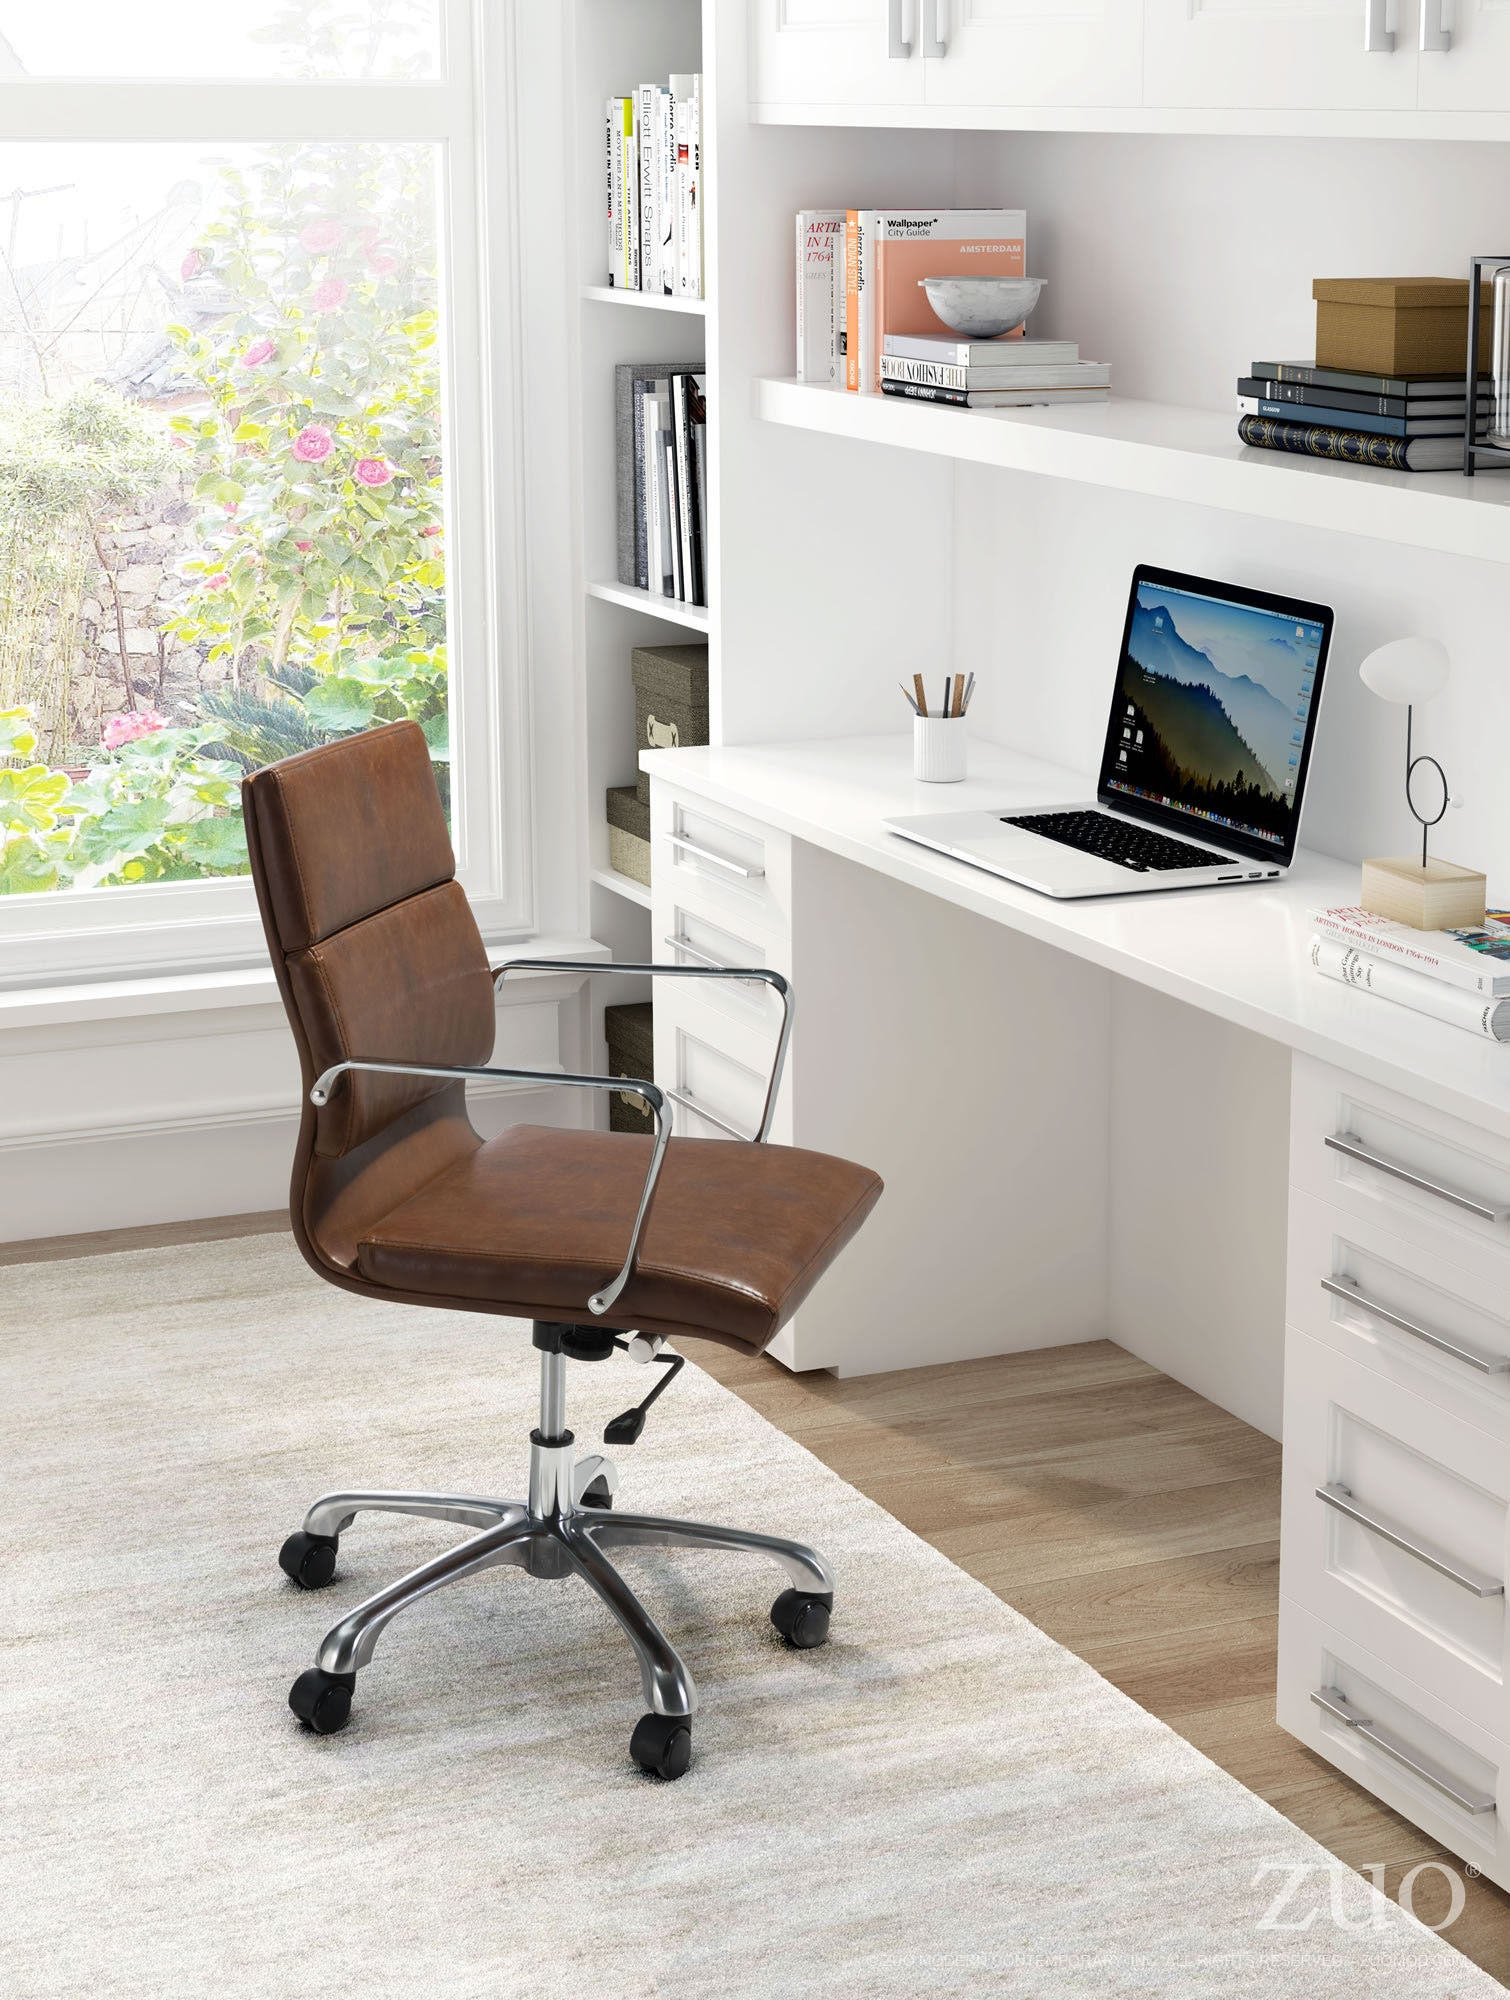 ithaca office chair in vintage brown leatherette on aluminum base